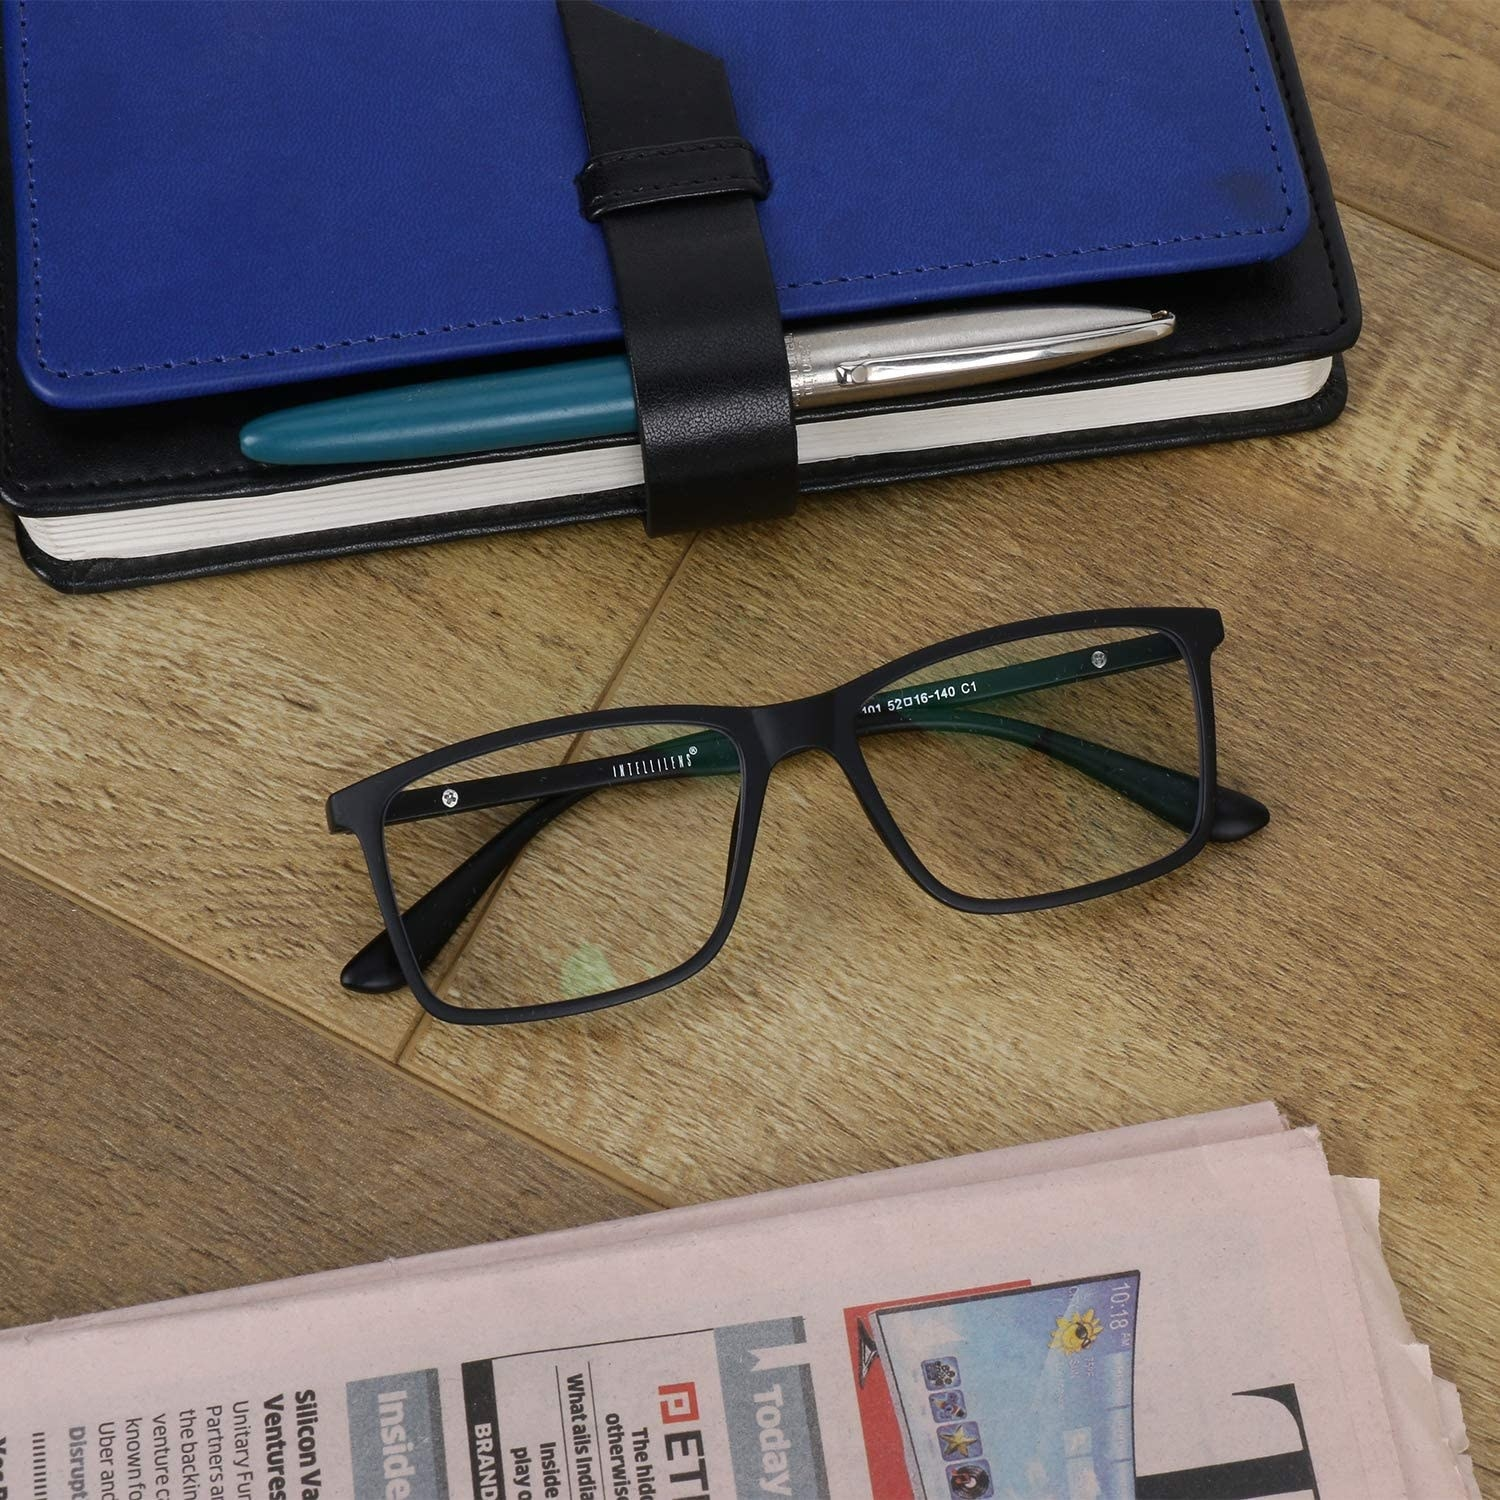 A pair of blue light blocking glasses on a table